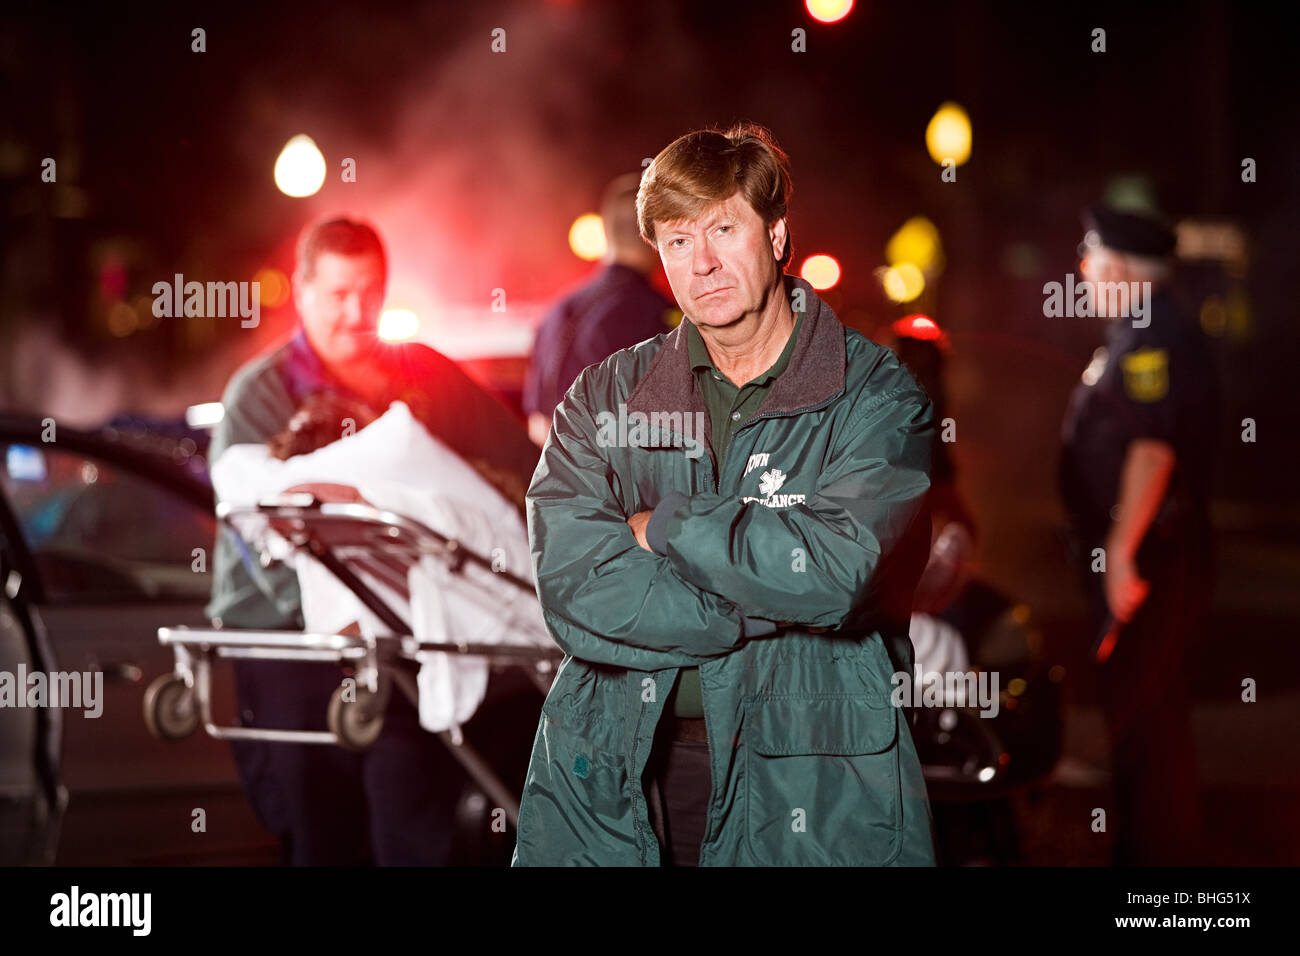 Emergency medical technician at scene of accident Stock Photo